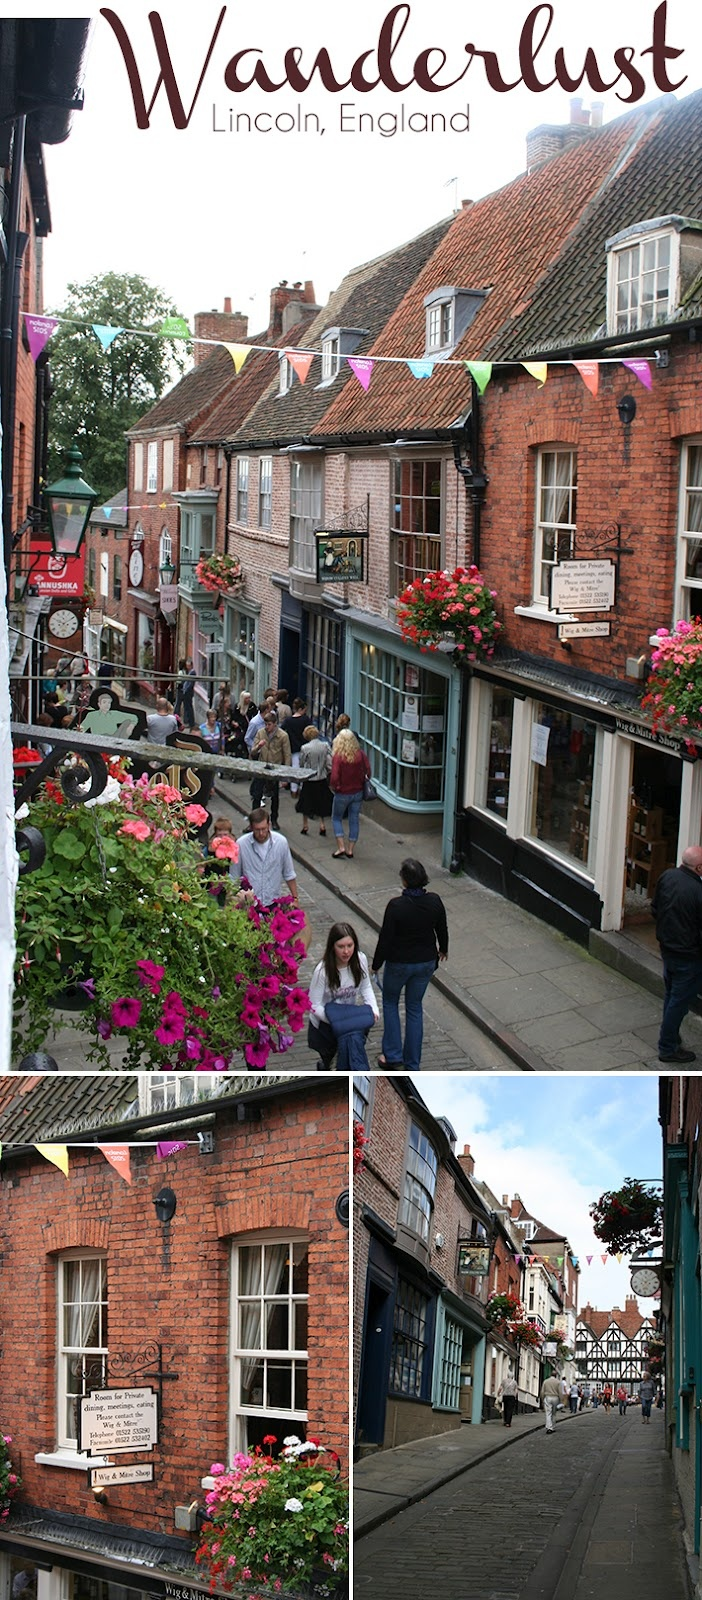 Lincoln, England - excited for a trip here.